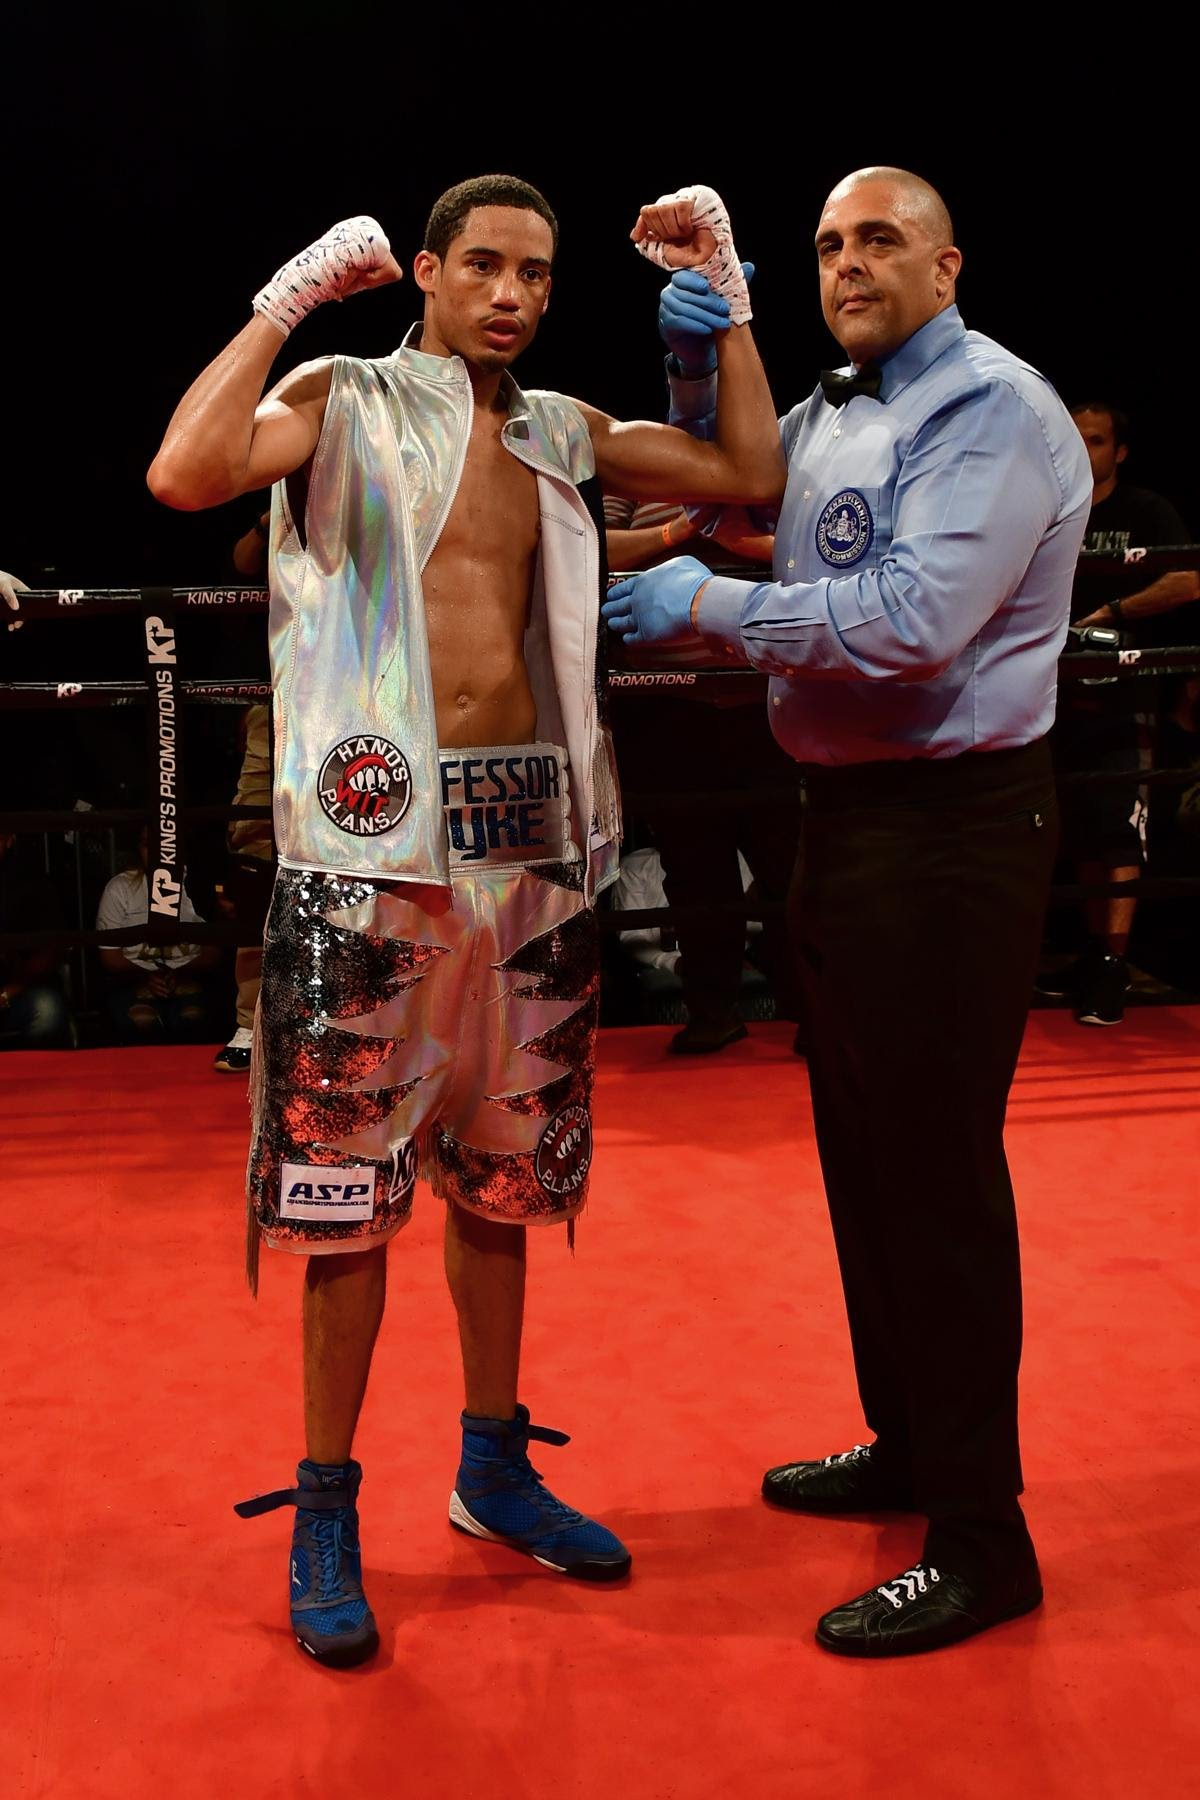 WBA number-15 ranked junior welterweight contender Mykal Fox kept on the path towards a major fight with a 10-round unanimous decision over Eudy Bernardo in the main event of an exciting nine-bout card at The Wind Creek Event Center in Bethlehem, Pa.